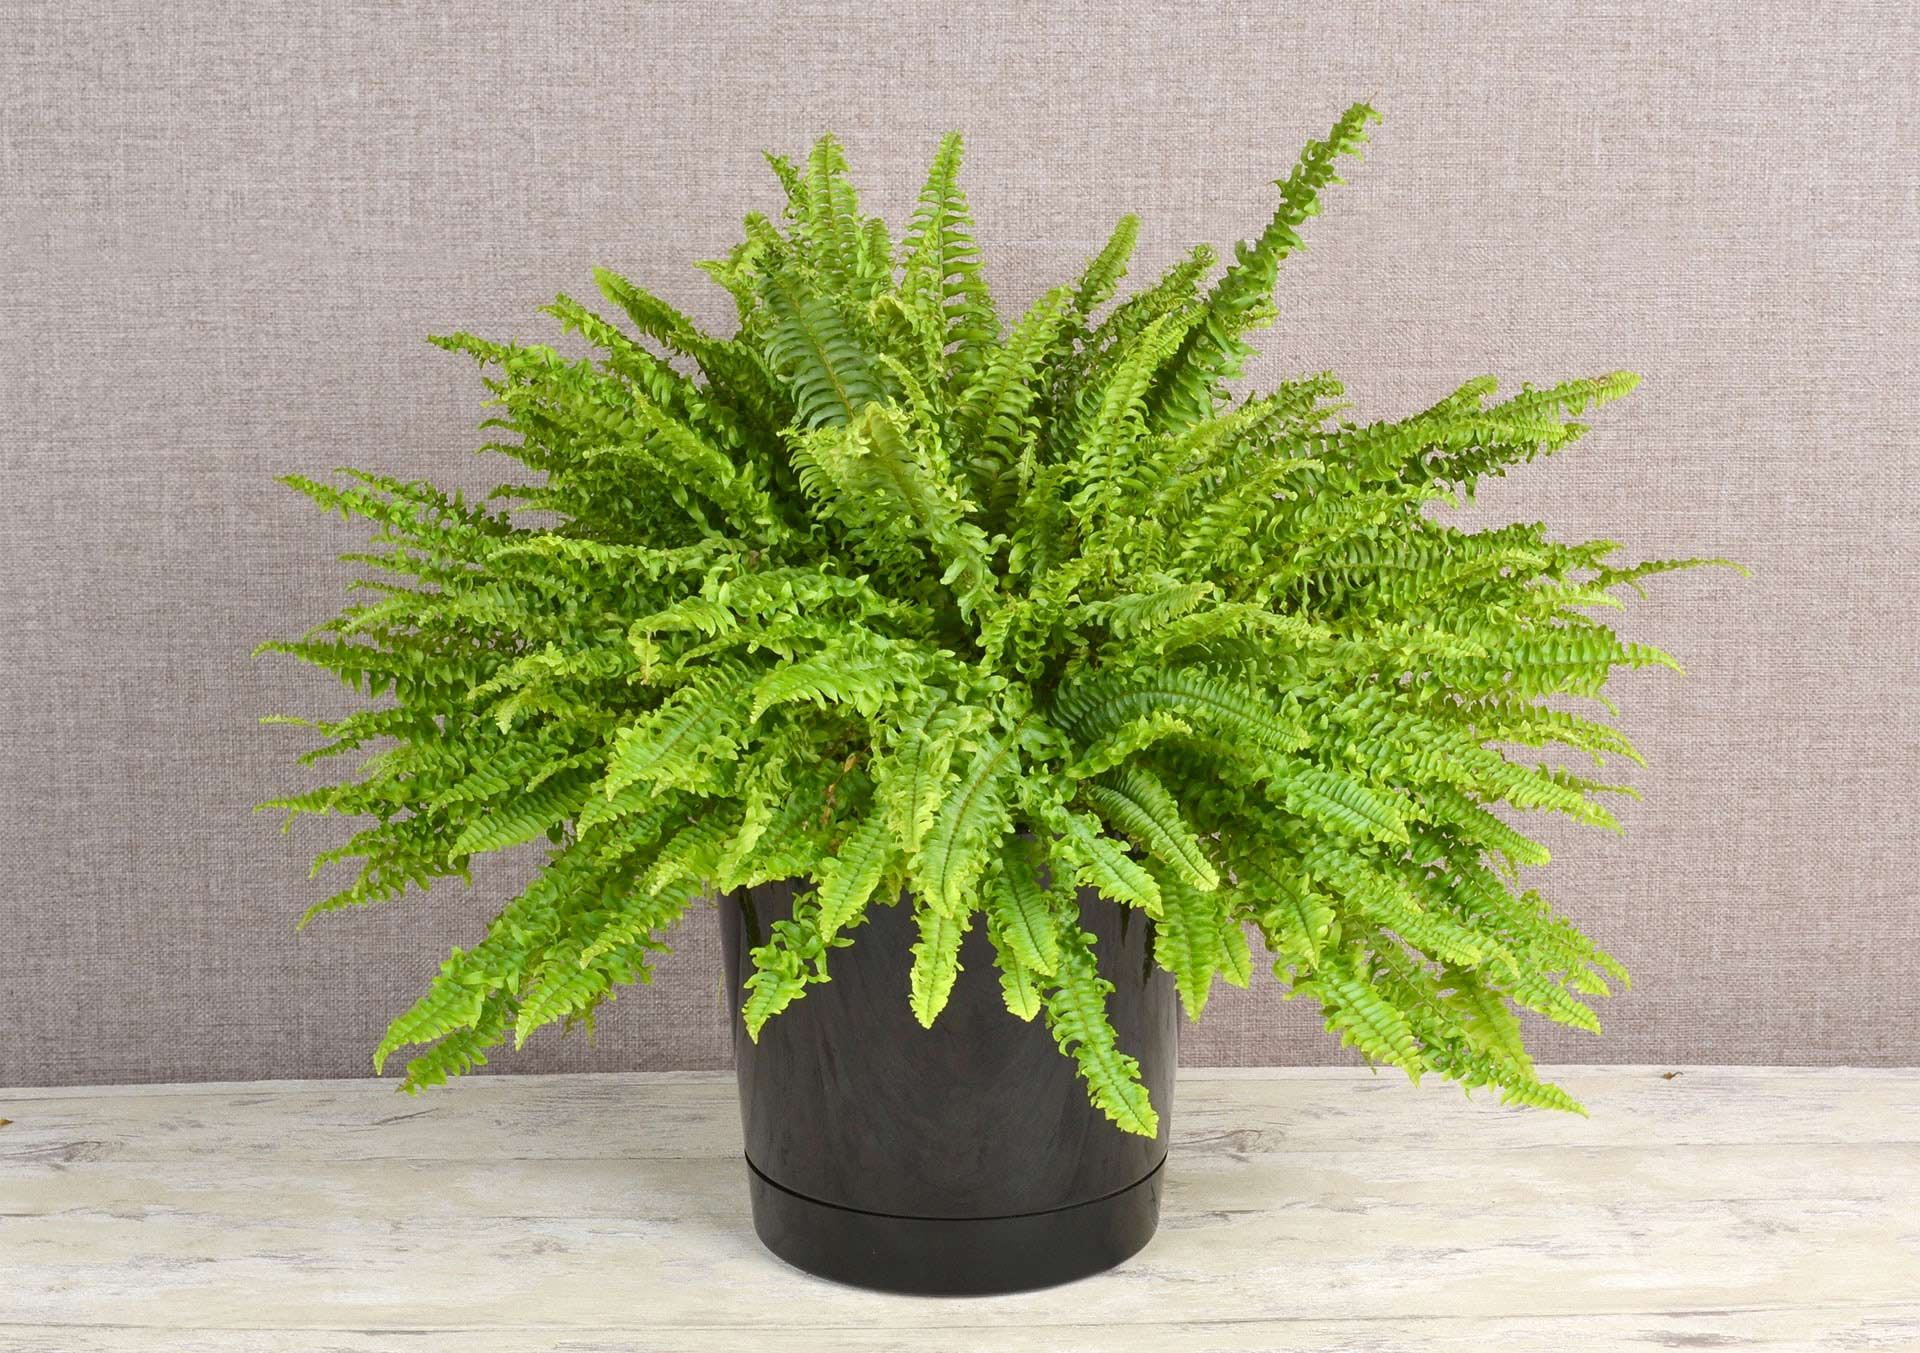 Green Indoor Plants for Sale and Delivery From Bachman's